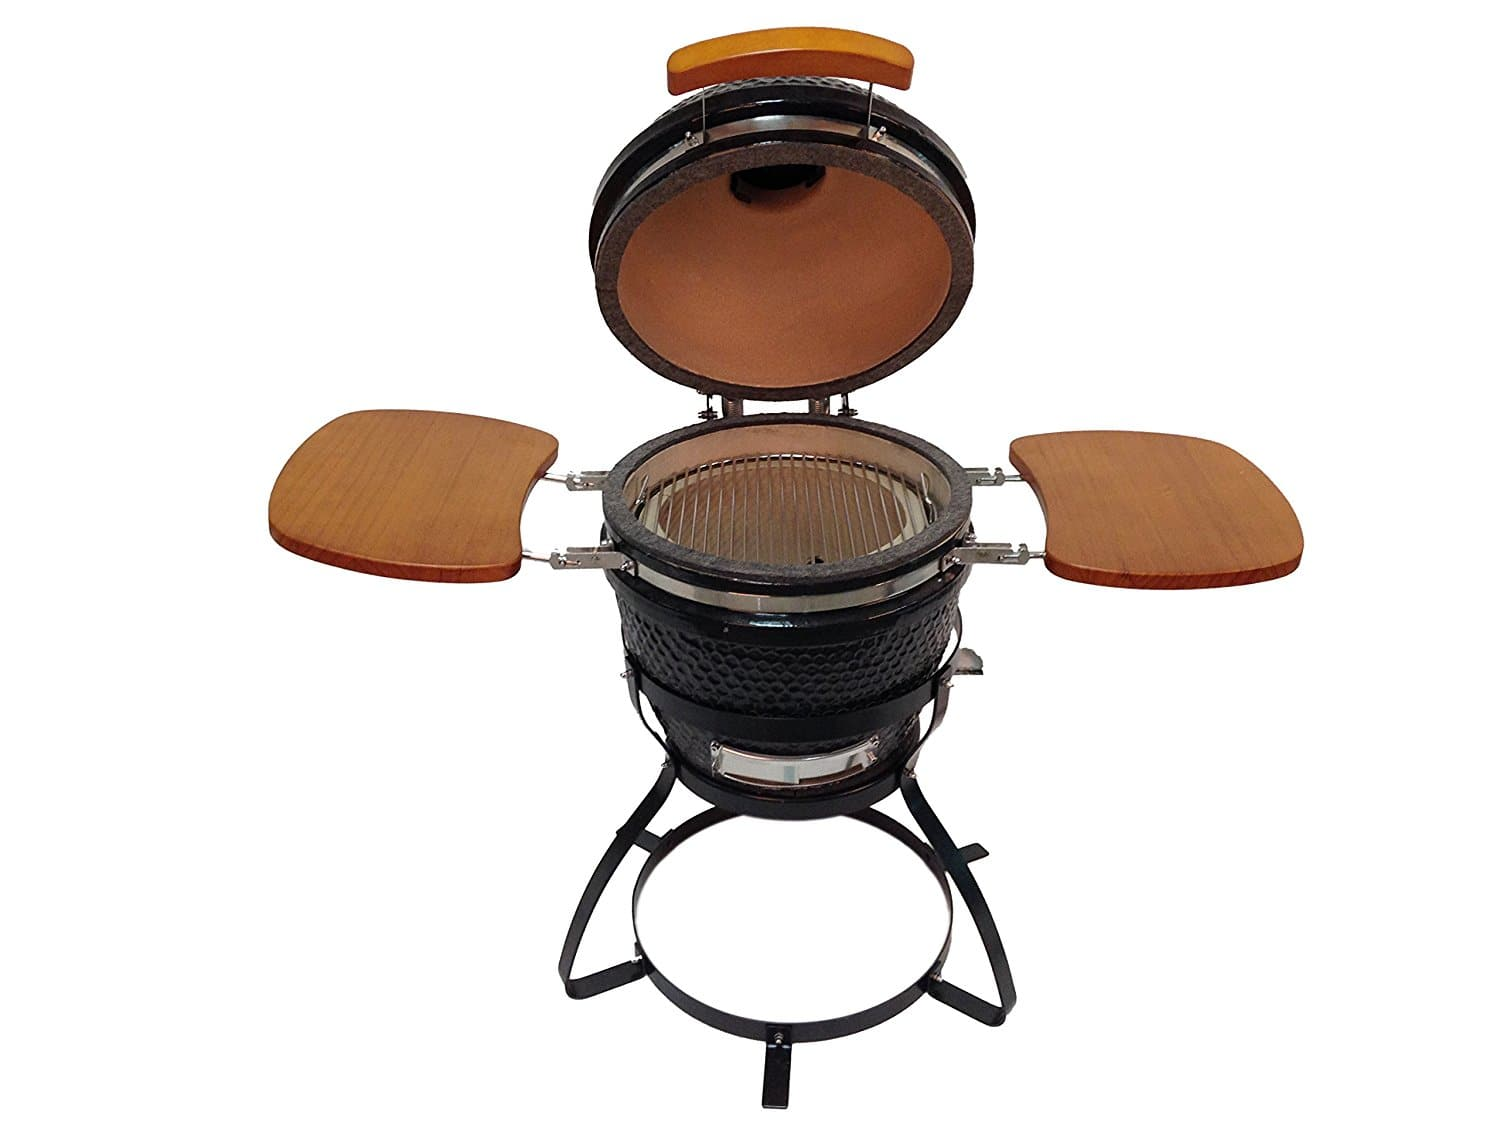 BEACON Ceramic Grill, Black with Side Folding Trays & Metal Stand $229.99